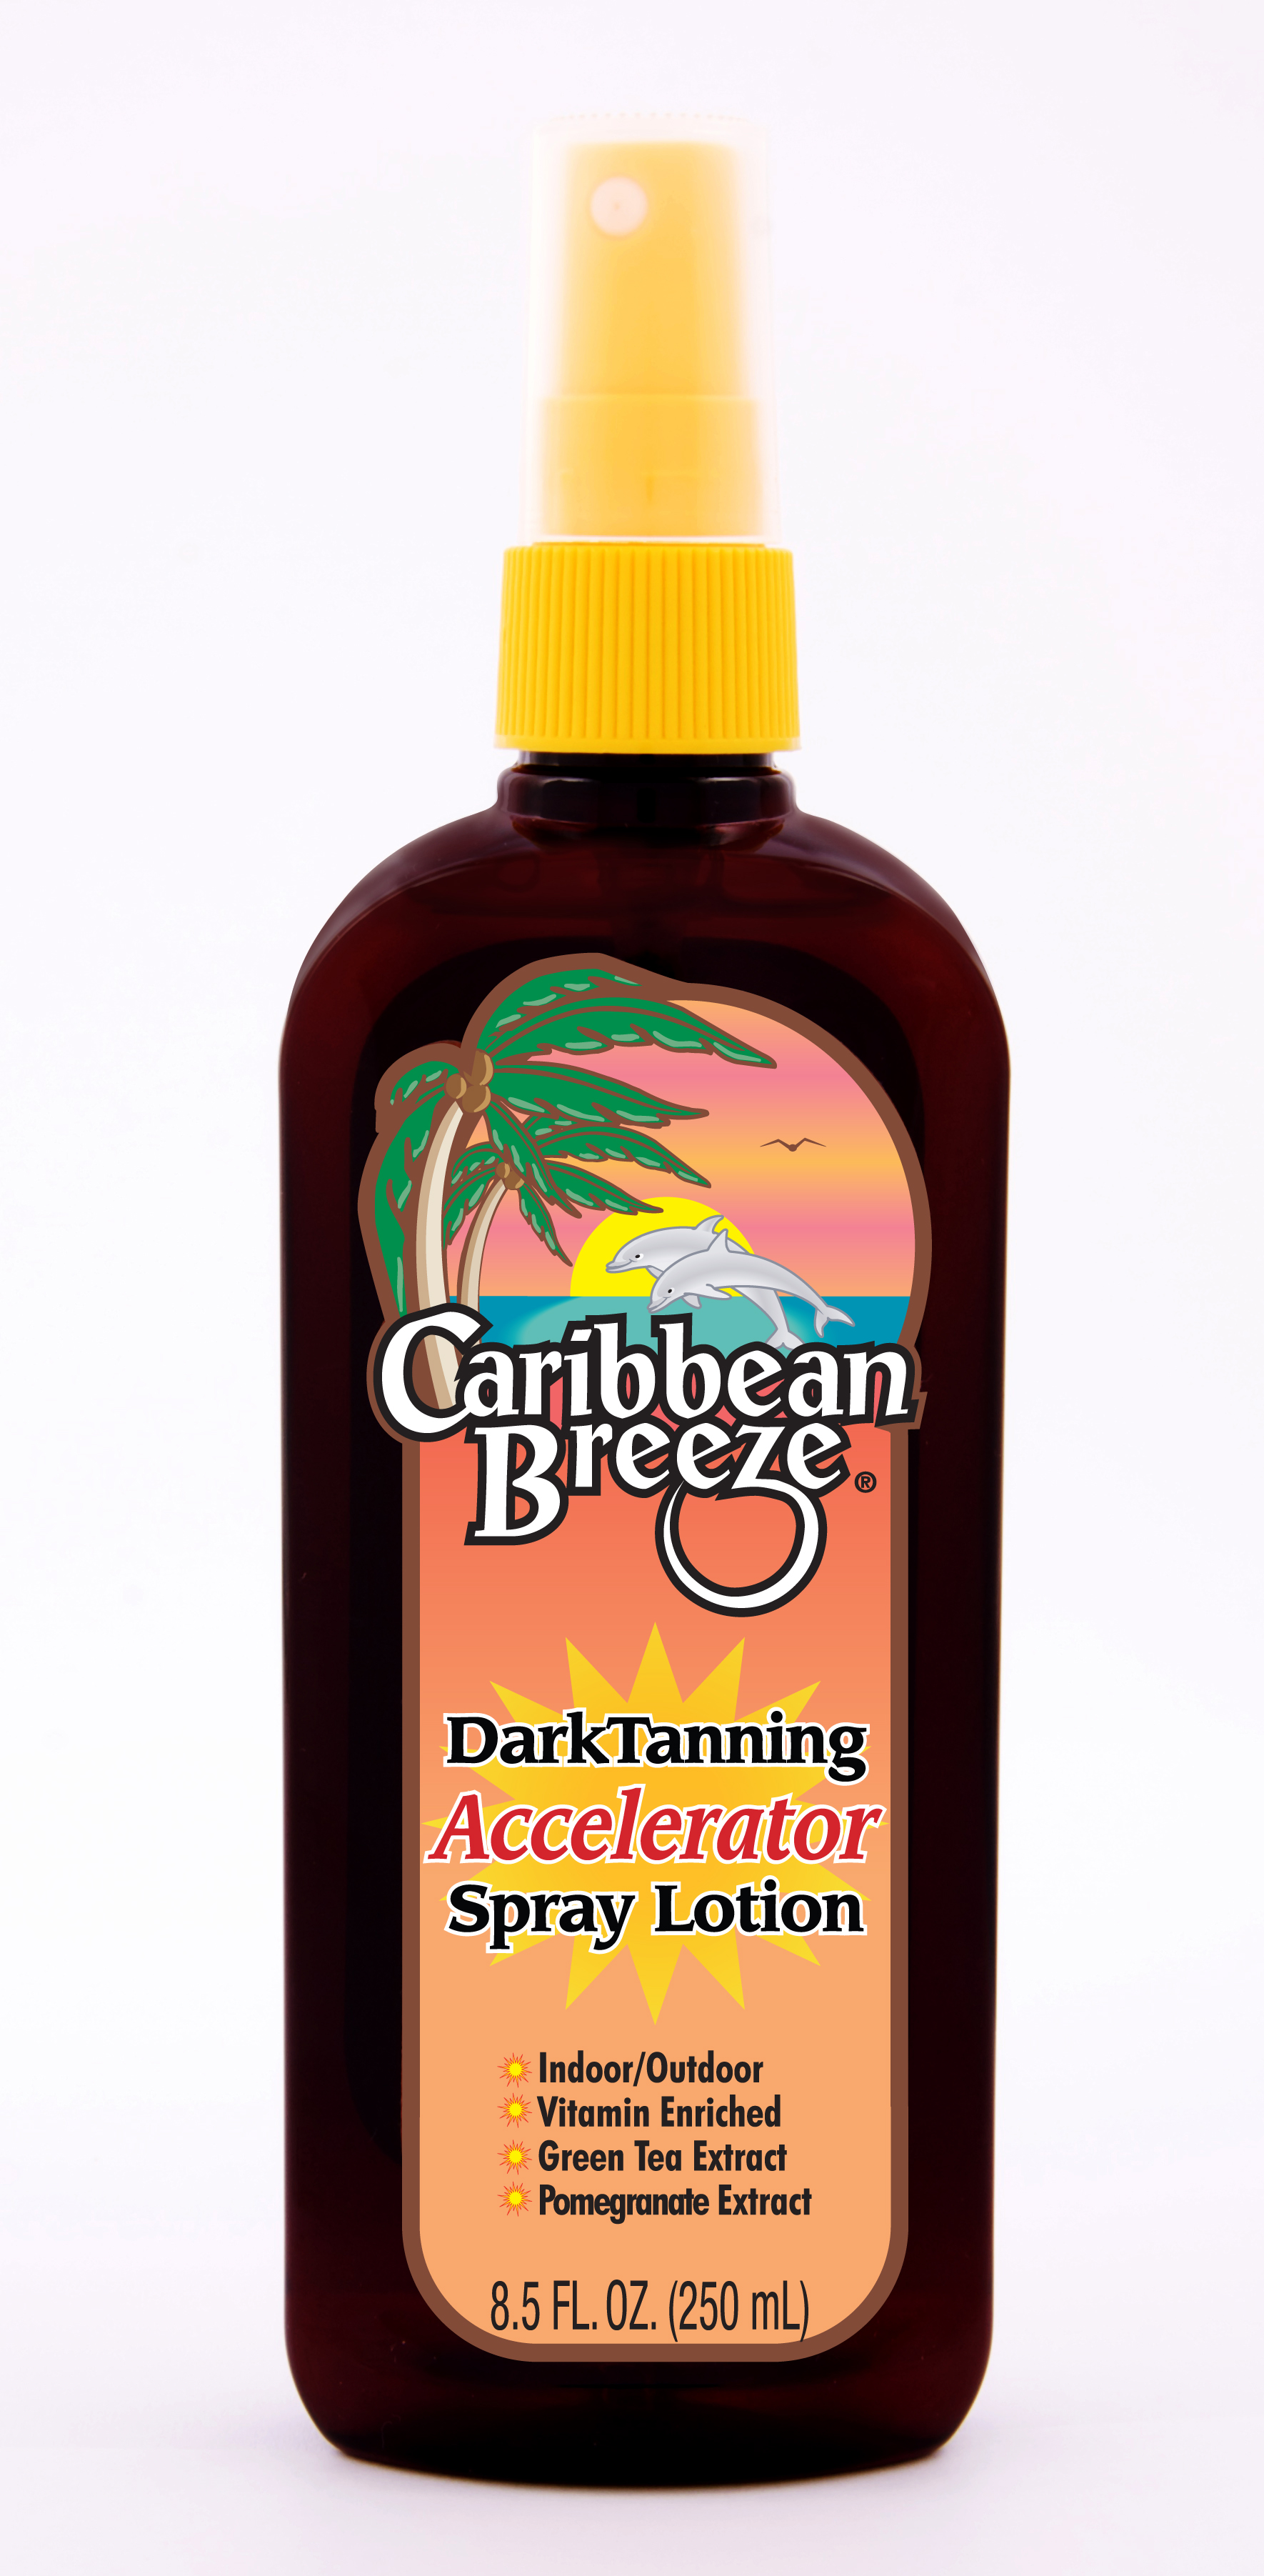 Caribbean Breeze Dark Tanning Accelerator Spray